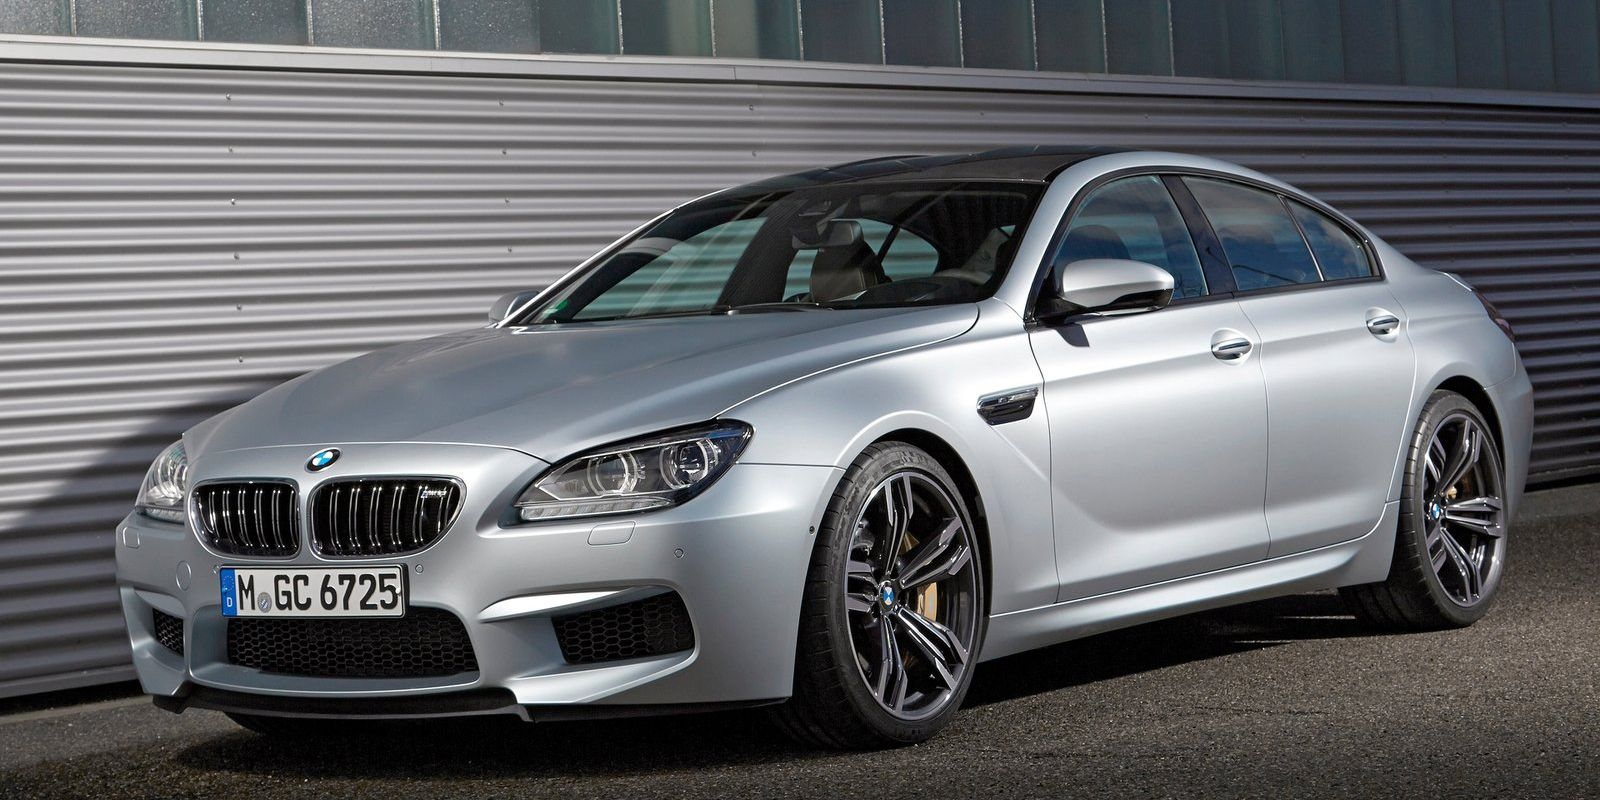 """<p>The sleekness of the M6 Gran Coupe alone should have a smartly-dressed and neatly-preened driver to match. BMW dropped the screaming V10 and went instead with a <a href=""""http://www.roadandtrack.com/new-cars/news/a17976/2013-bmw-m6-gran-coupe/"""">twin-turbocharged V8</a>, which is a little more subtle but still powerful. You wouldn't want to draw <em>too</em> much attention to yourself as a villain, right?</p>"""